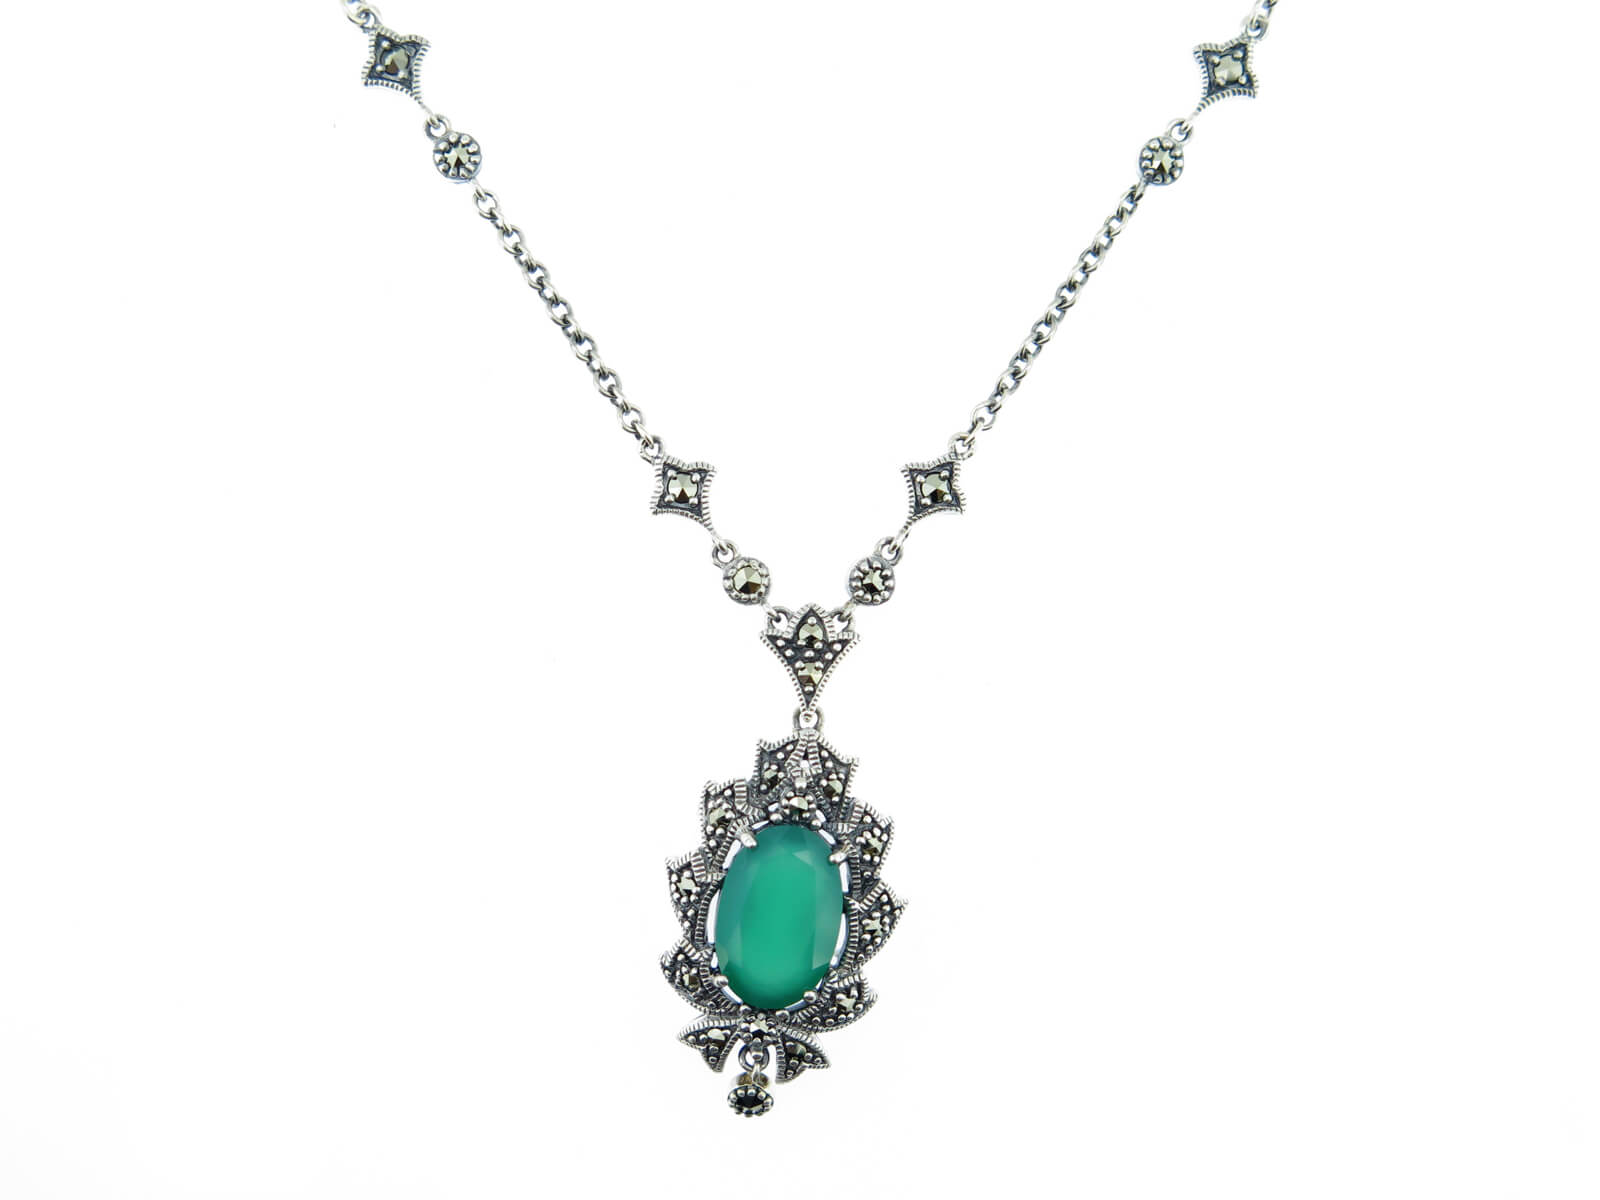 Dyed Green Chalcedony Necklace MJ18776